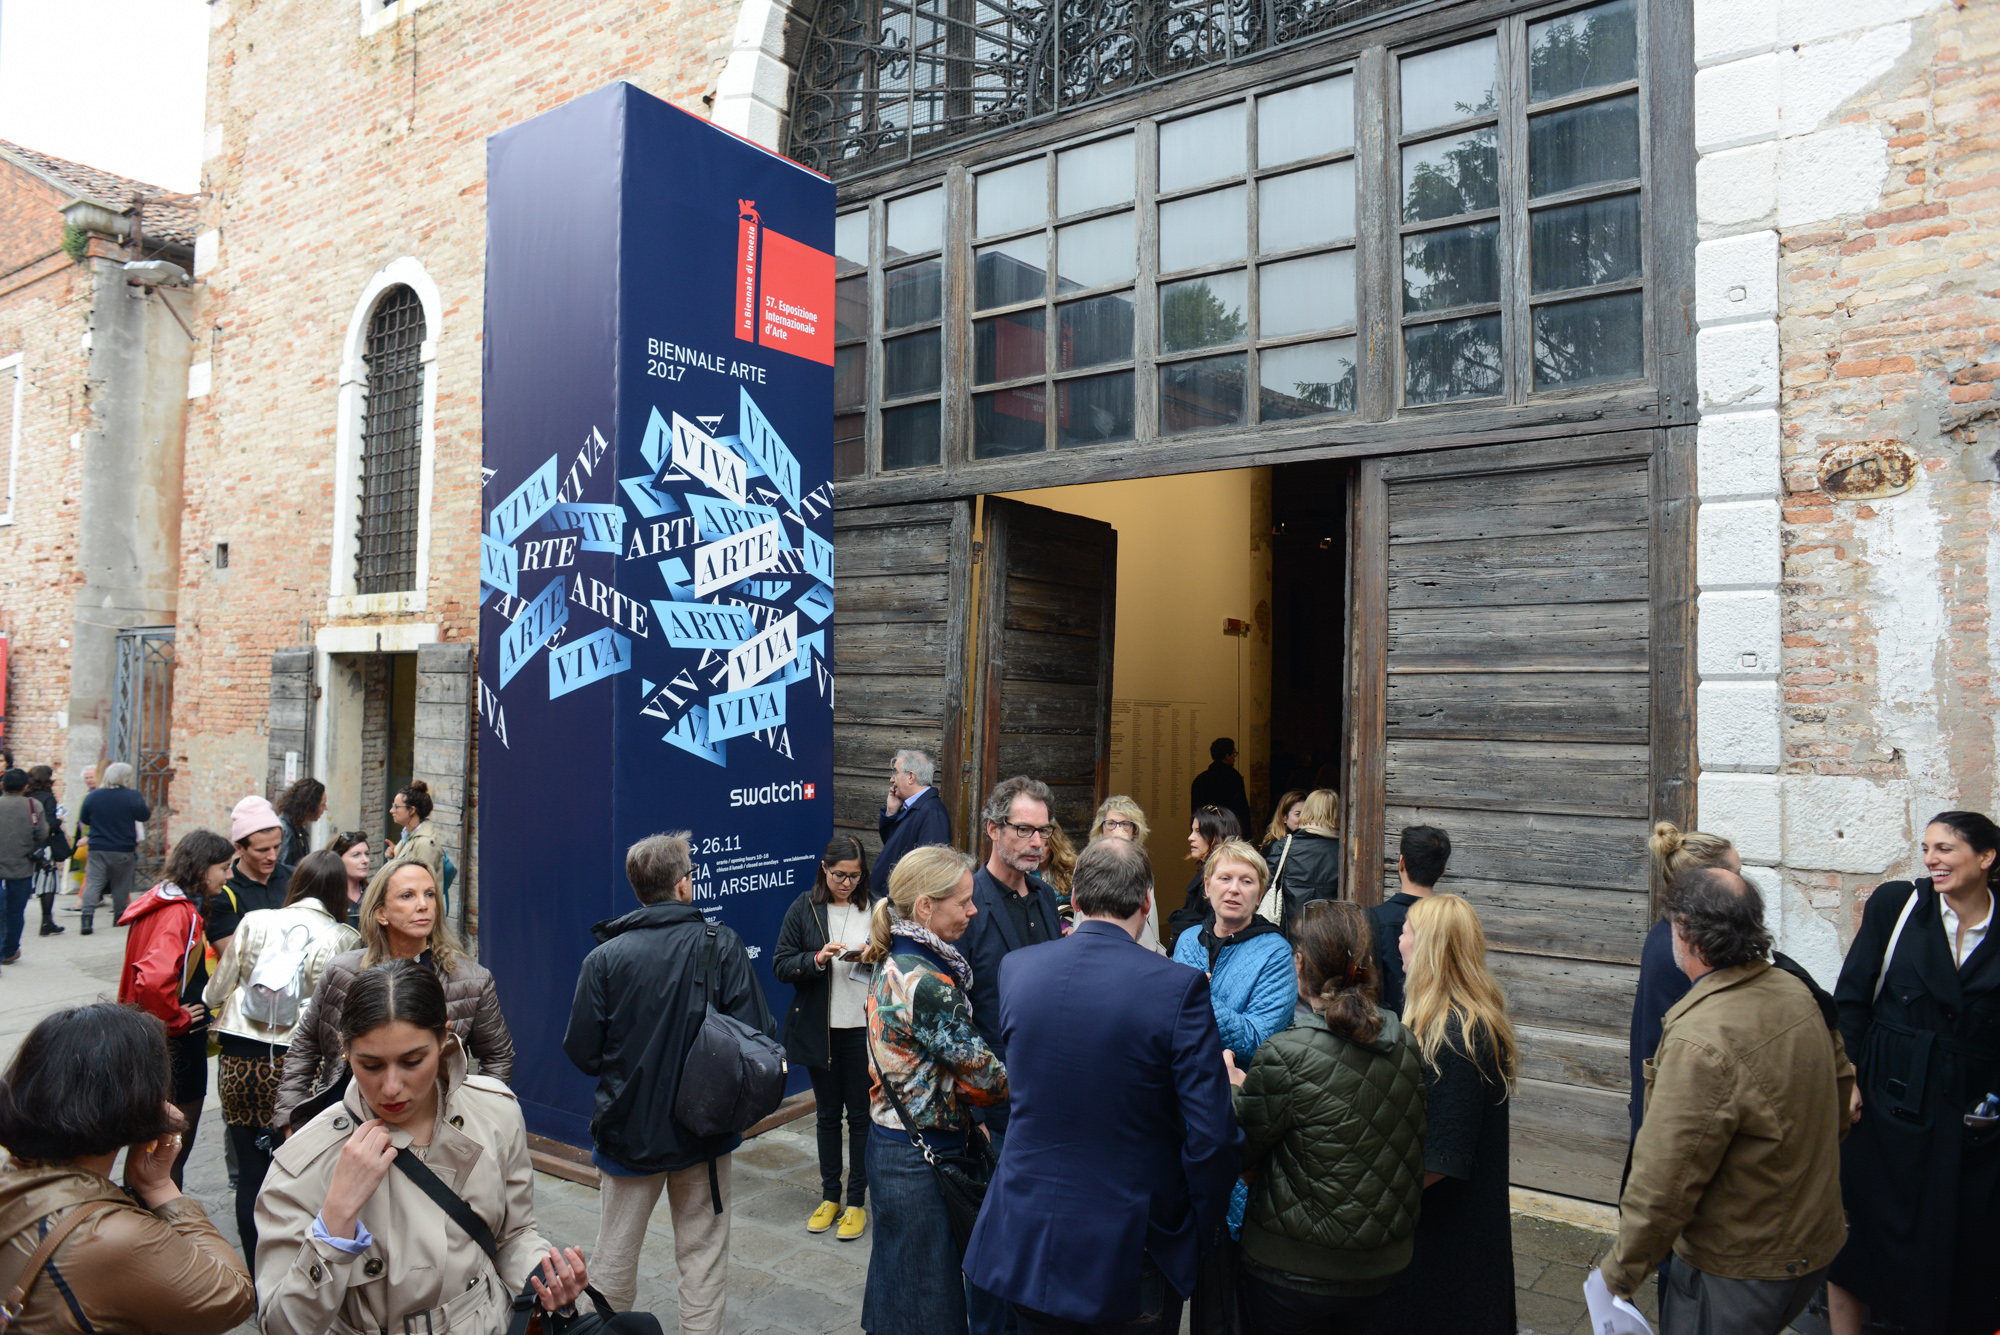 The Artists in the Venice Biennale 2019 - Artsy